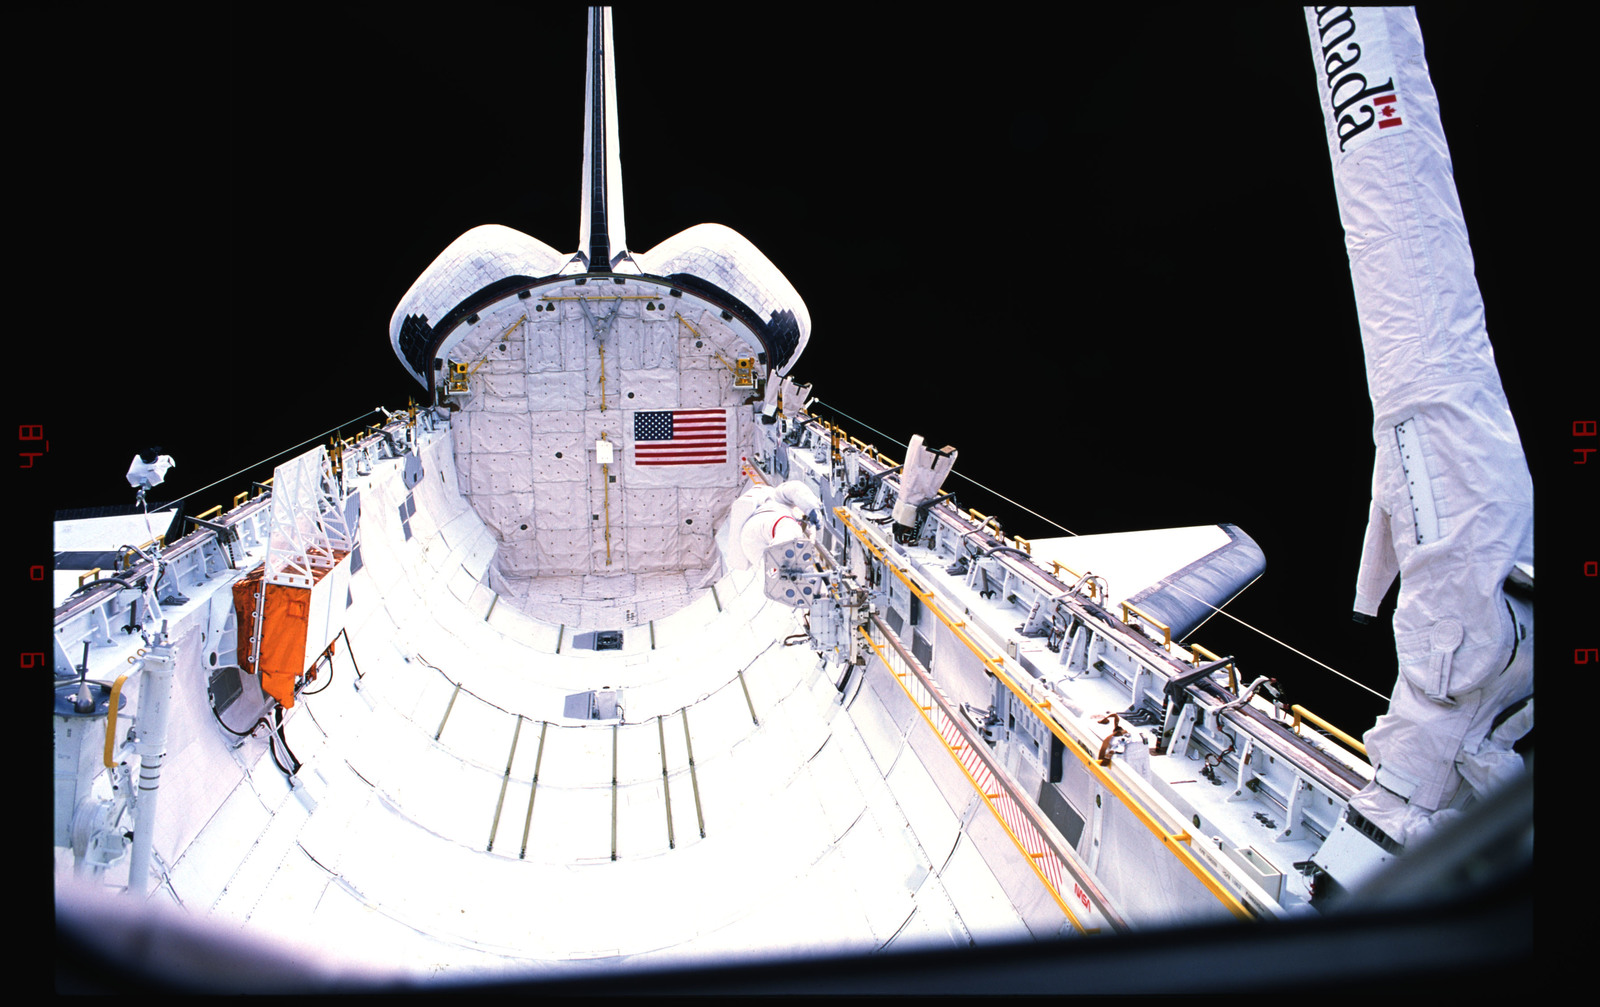 S37-33-021 - STS-037 - Astronauts in EMU's in the payload bay